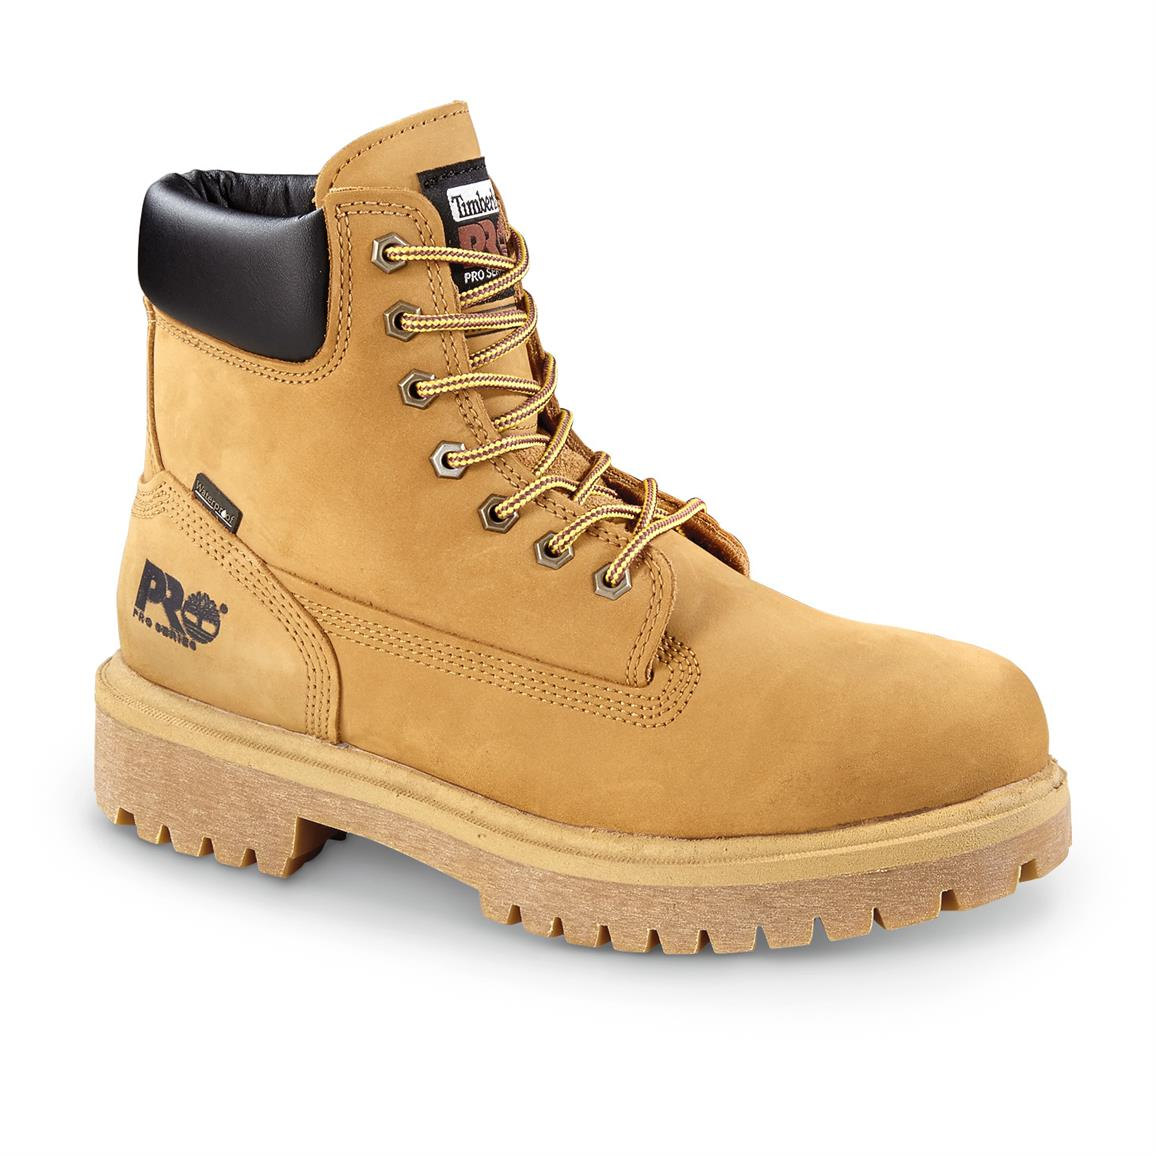 "Timberland PRO Direct Attach 6"" Soft Toe Waterproof Work Boots, Wheat"